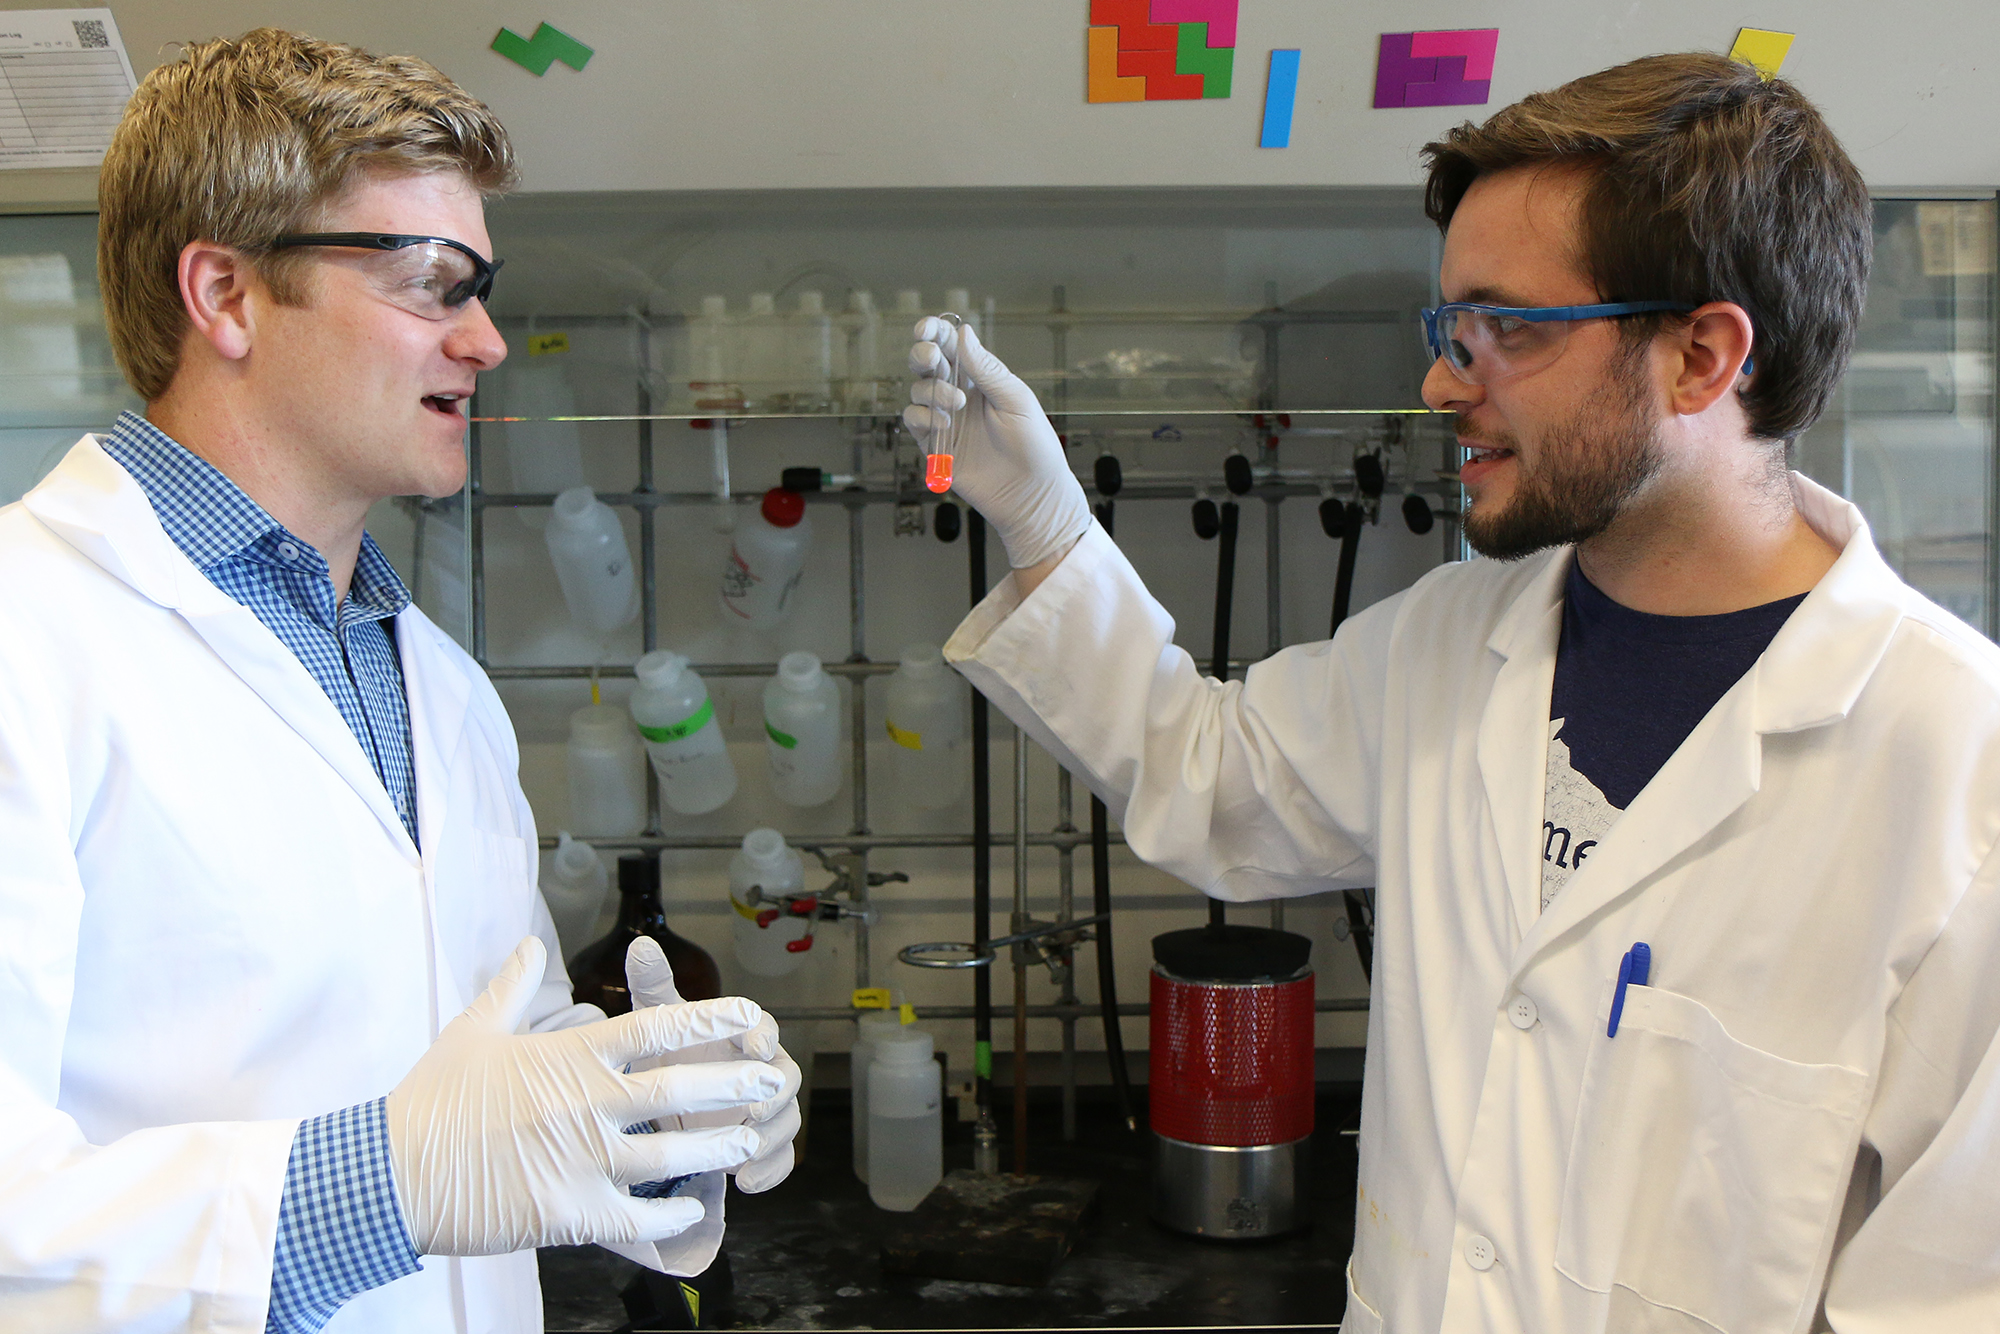 Brett VanVeller (left), assistant professor of chemistry, and Bryan Lampkin, graduate student in chemistry, look at a fluorescent chemical.